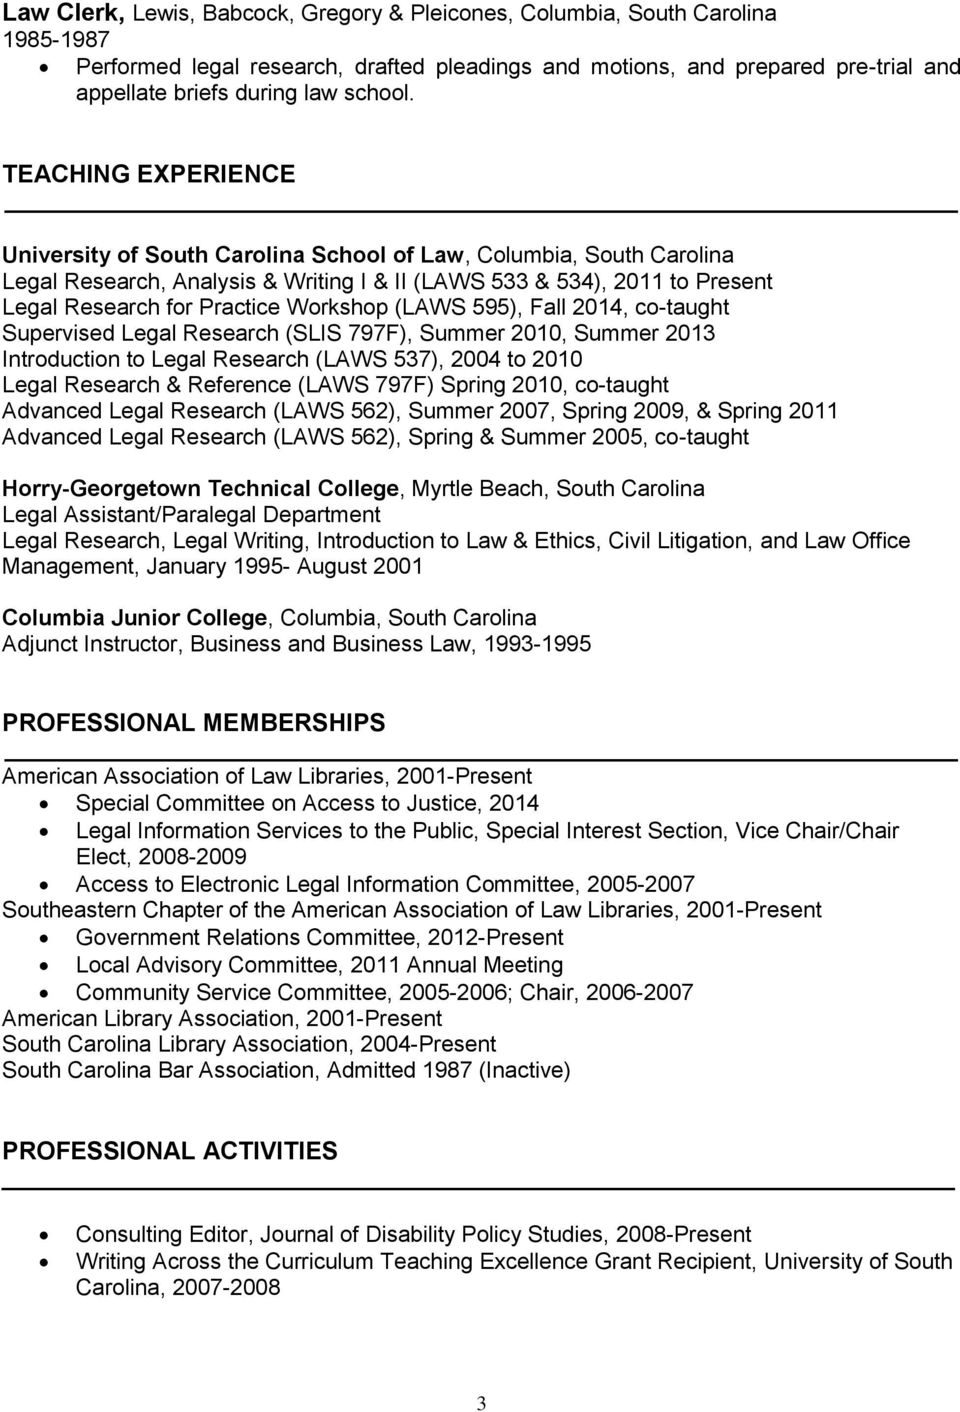 TEACHING EXPERIENCE University of South Carolina School of Law, Columbia, South Carolina Legal Research, Analysis & Writing I & II (LAWS 533 & 534), 2011 to Present Legal Research for Practice